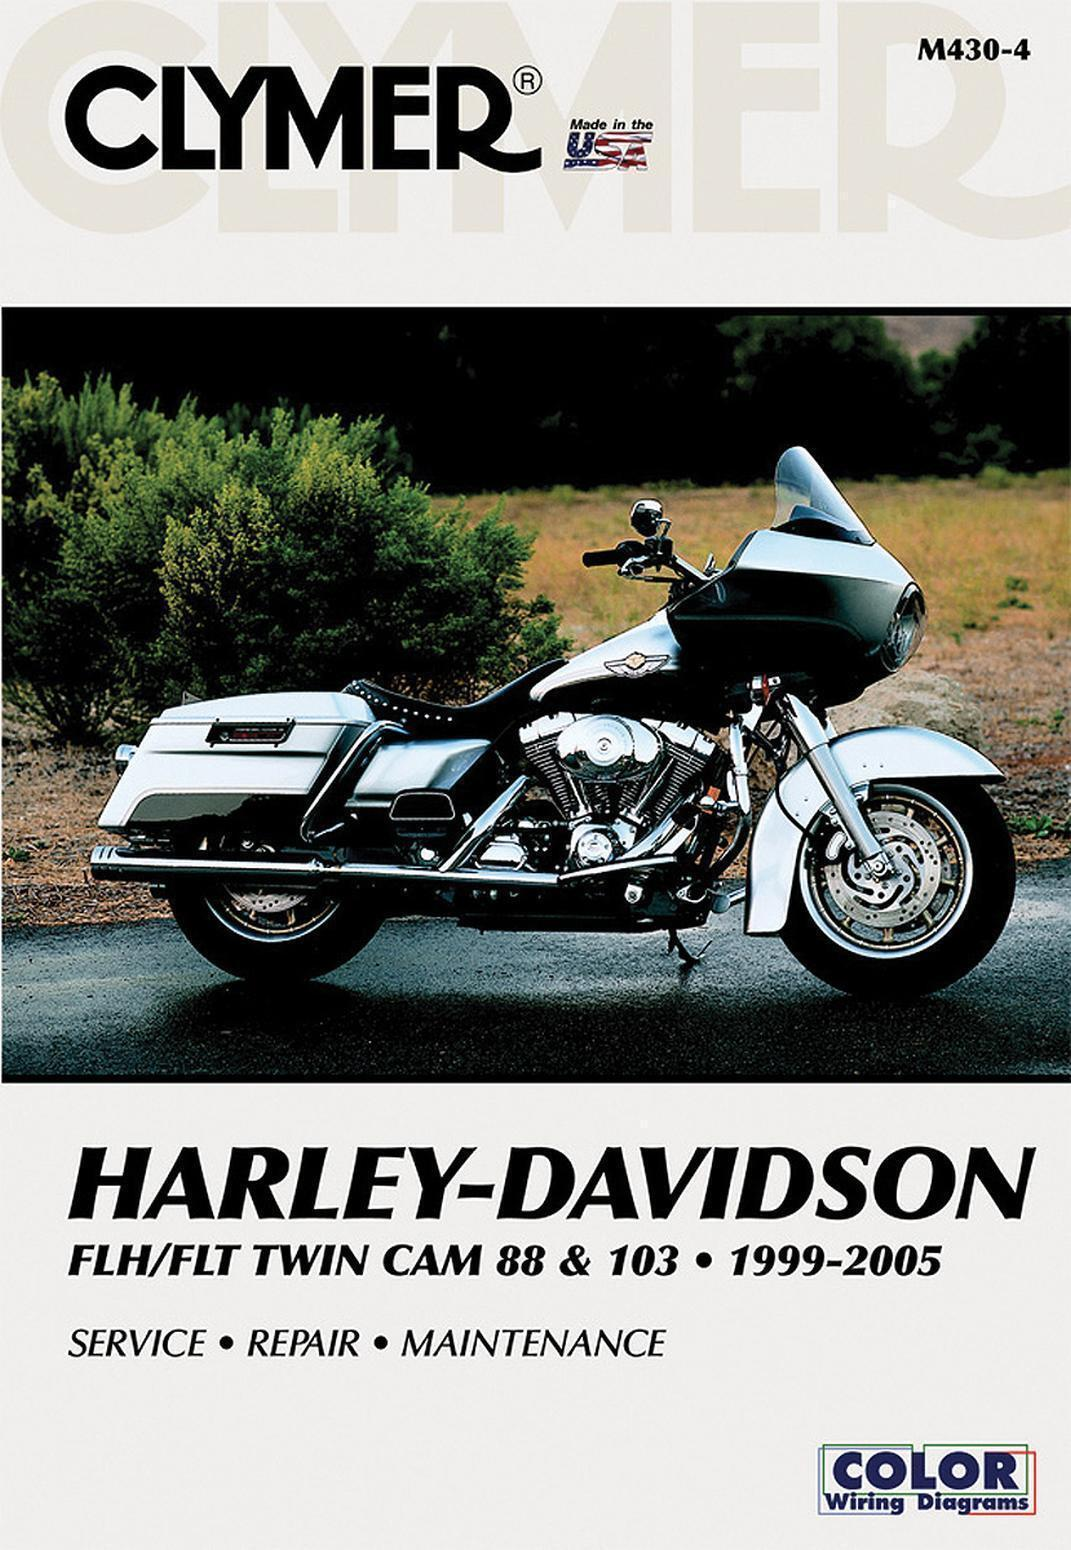 Clymer M4304 Service Repair Manual For Harley Flh Flt Twin Cam 88 Wiring Diagram Rescontentglobalinflowinflowcomponenttechnicalissues